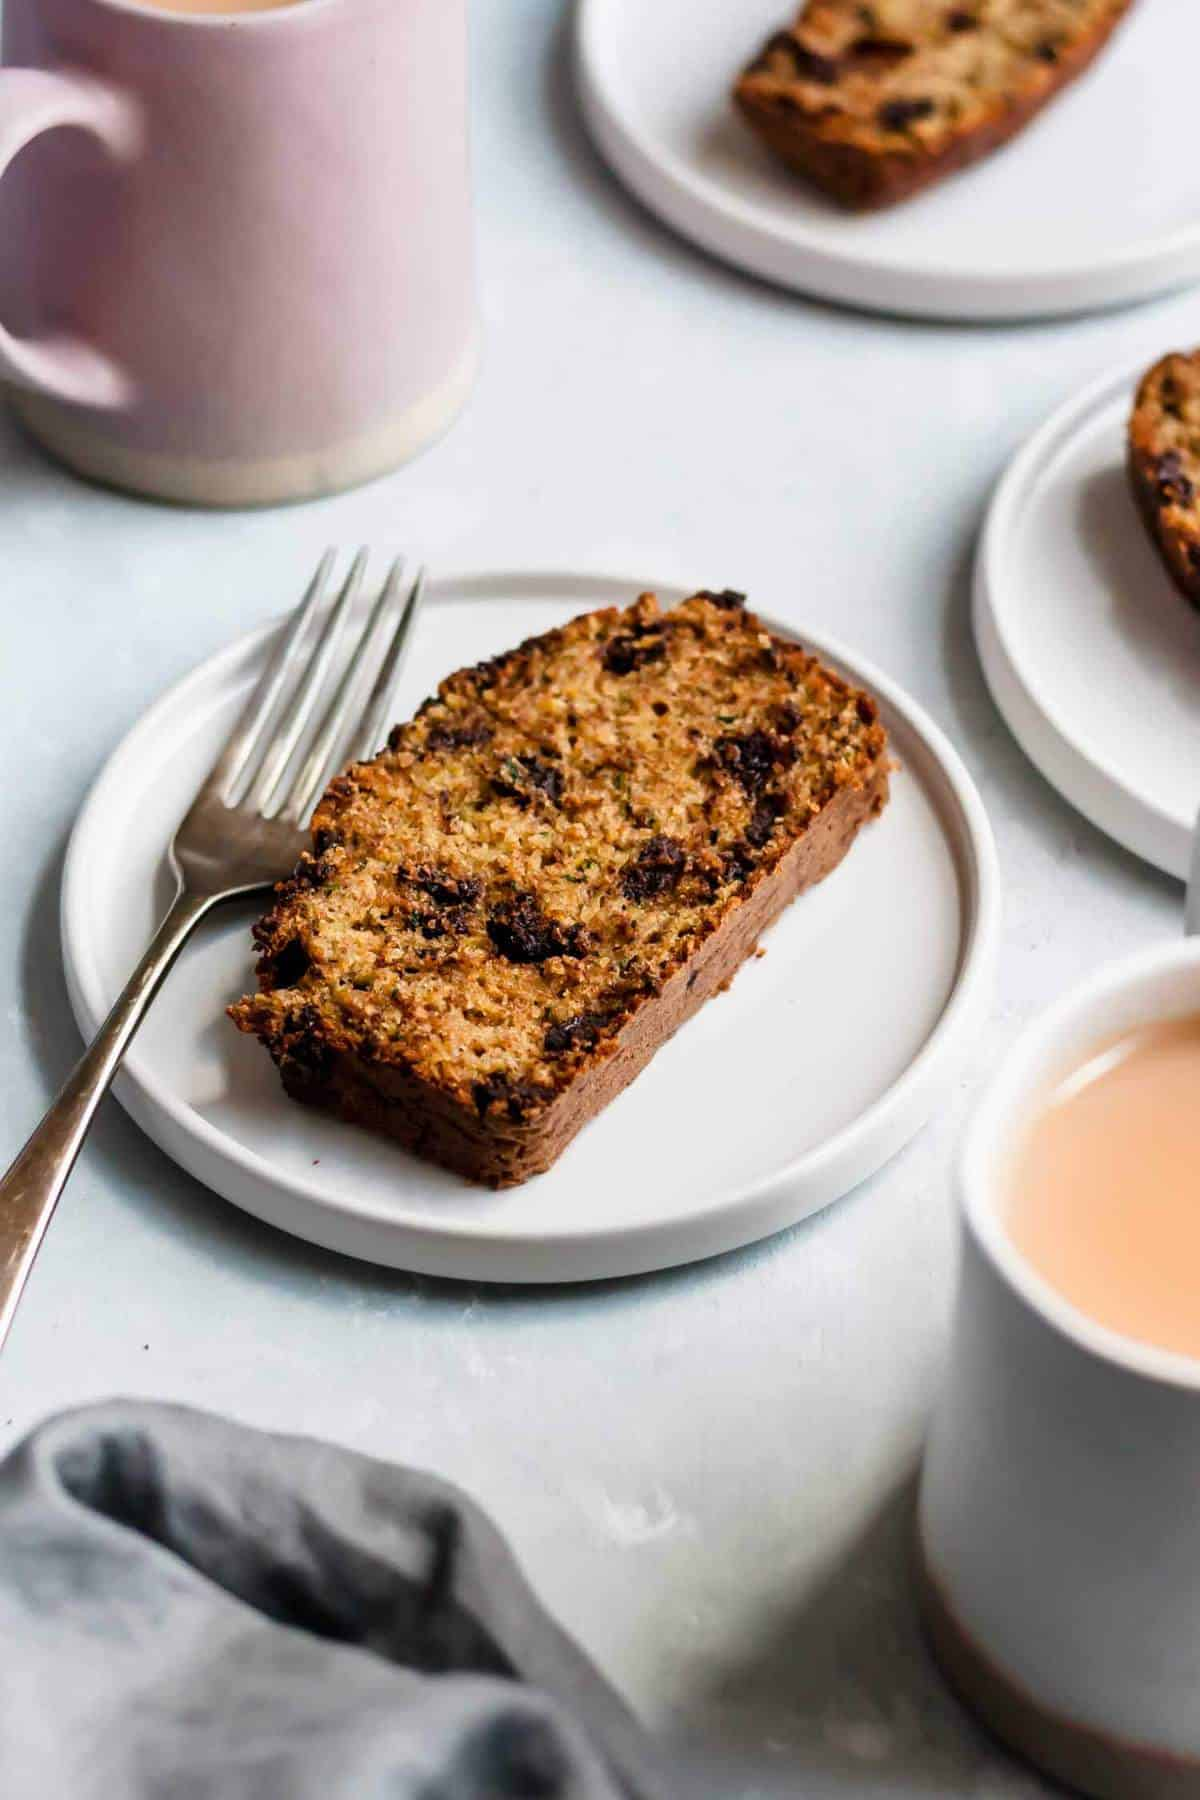 a slice of zucchini bread on a plate with a fork and a mug of tea nearby